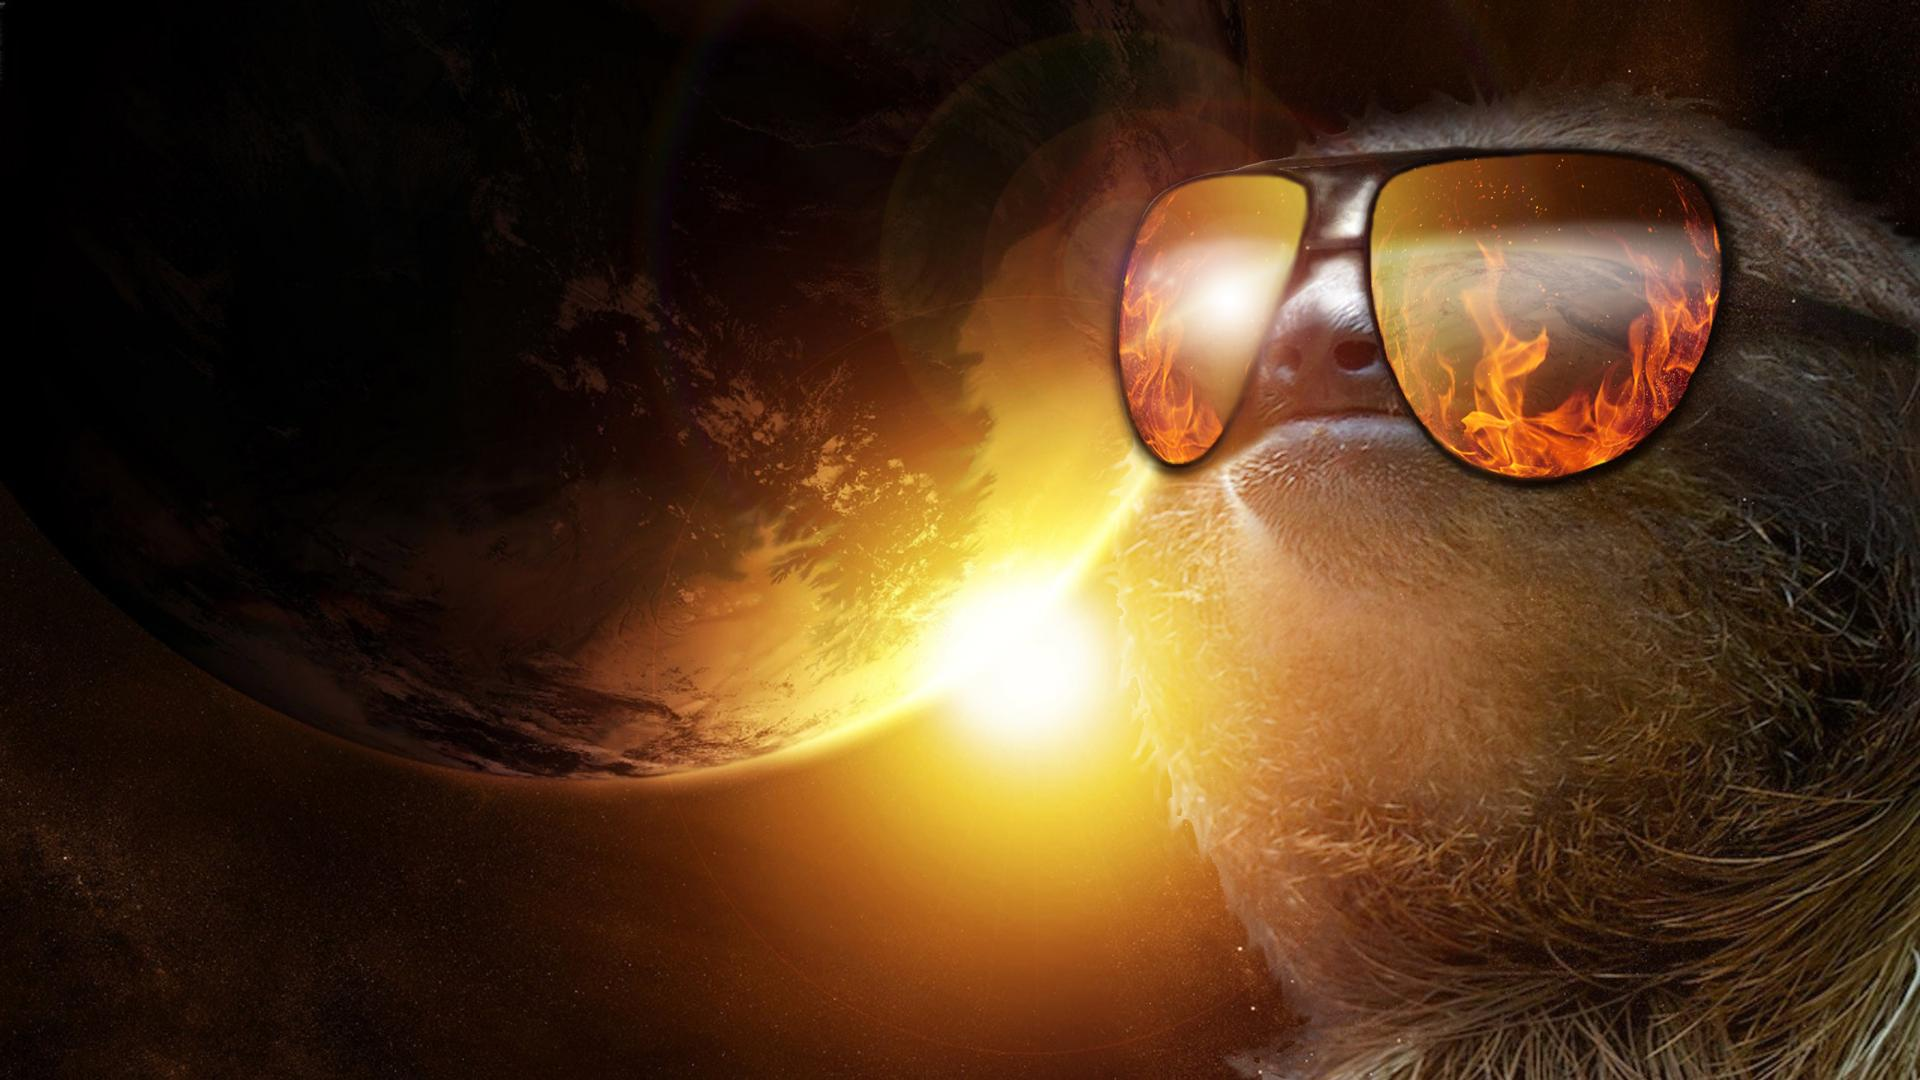 sloth astronaut facebook cover - photo #41